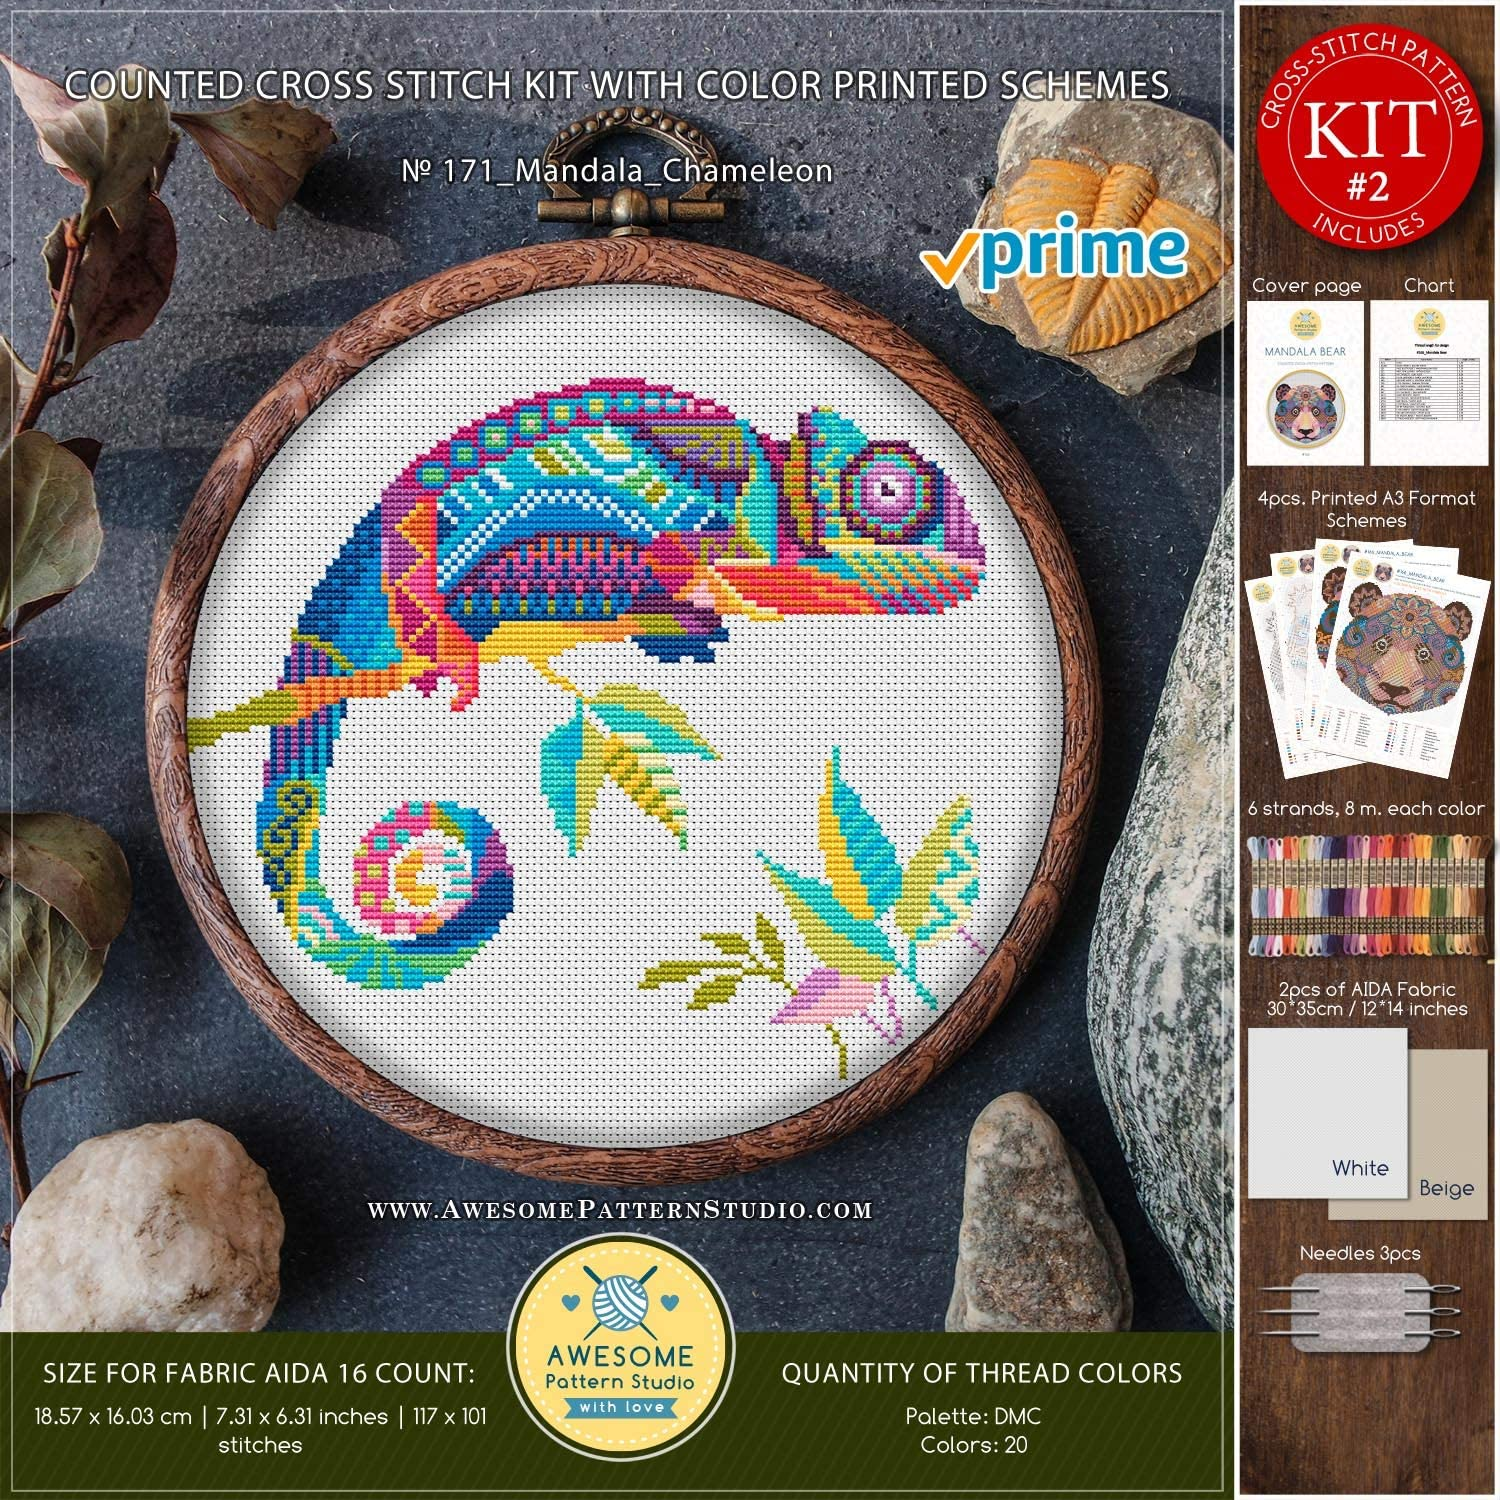 Mandala Chameleon K171 Counted Cross Stitch KIT#2 Needles Threads Fabrick and 4 Printed Color Schemes Inside Embroidery Pattern Kit